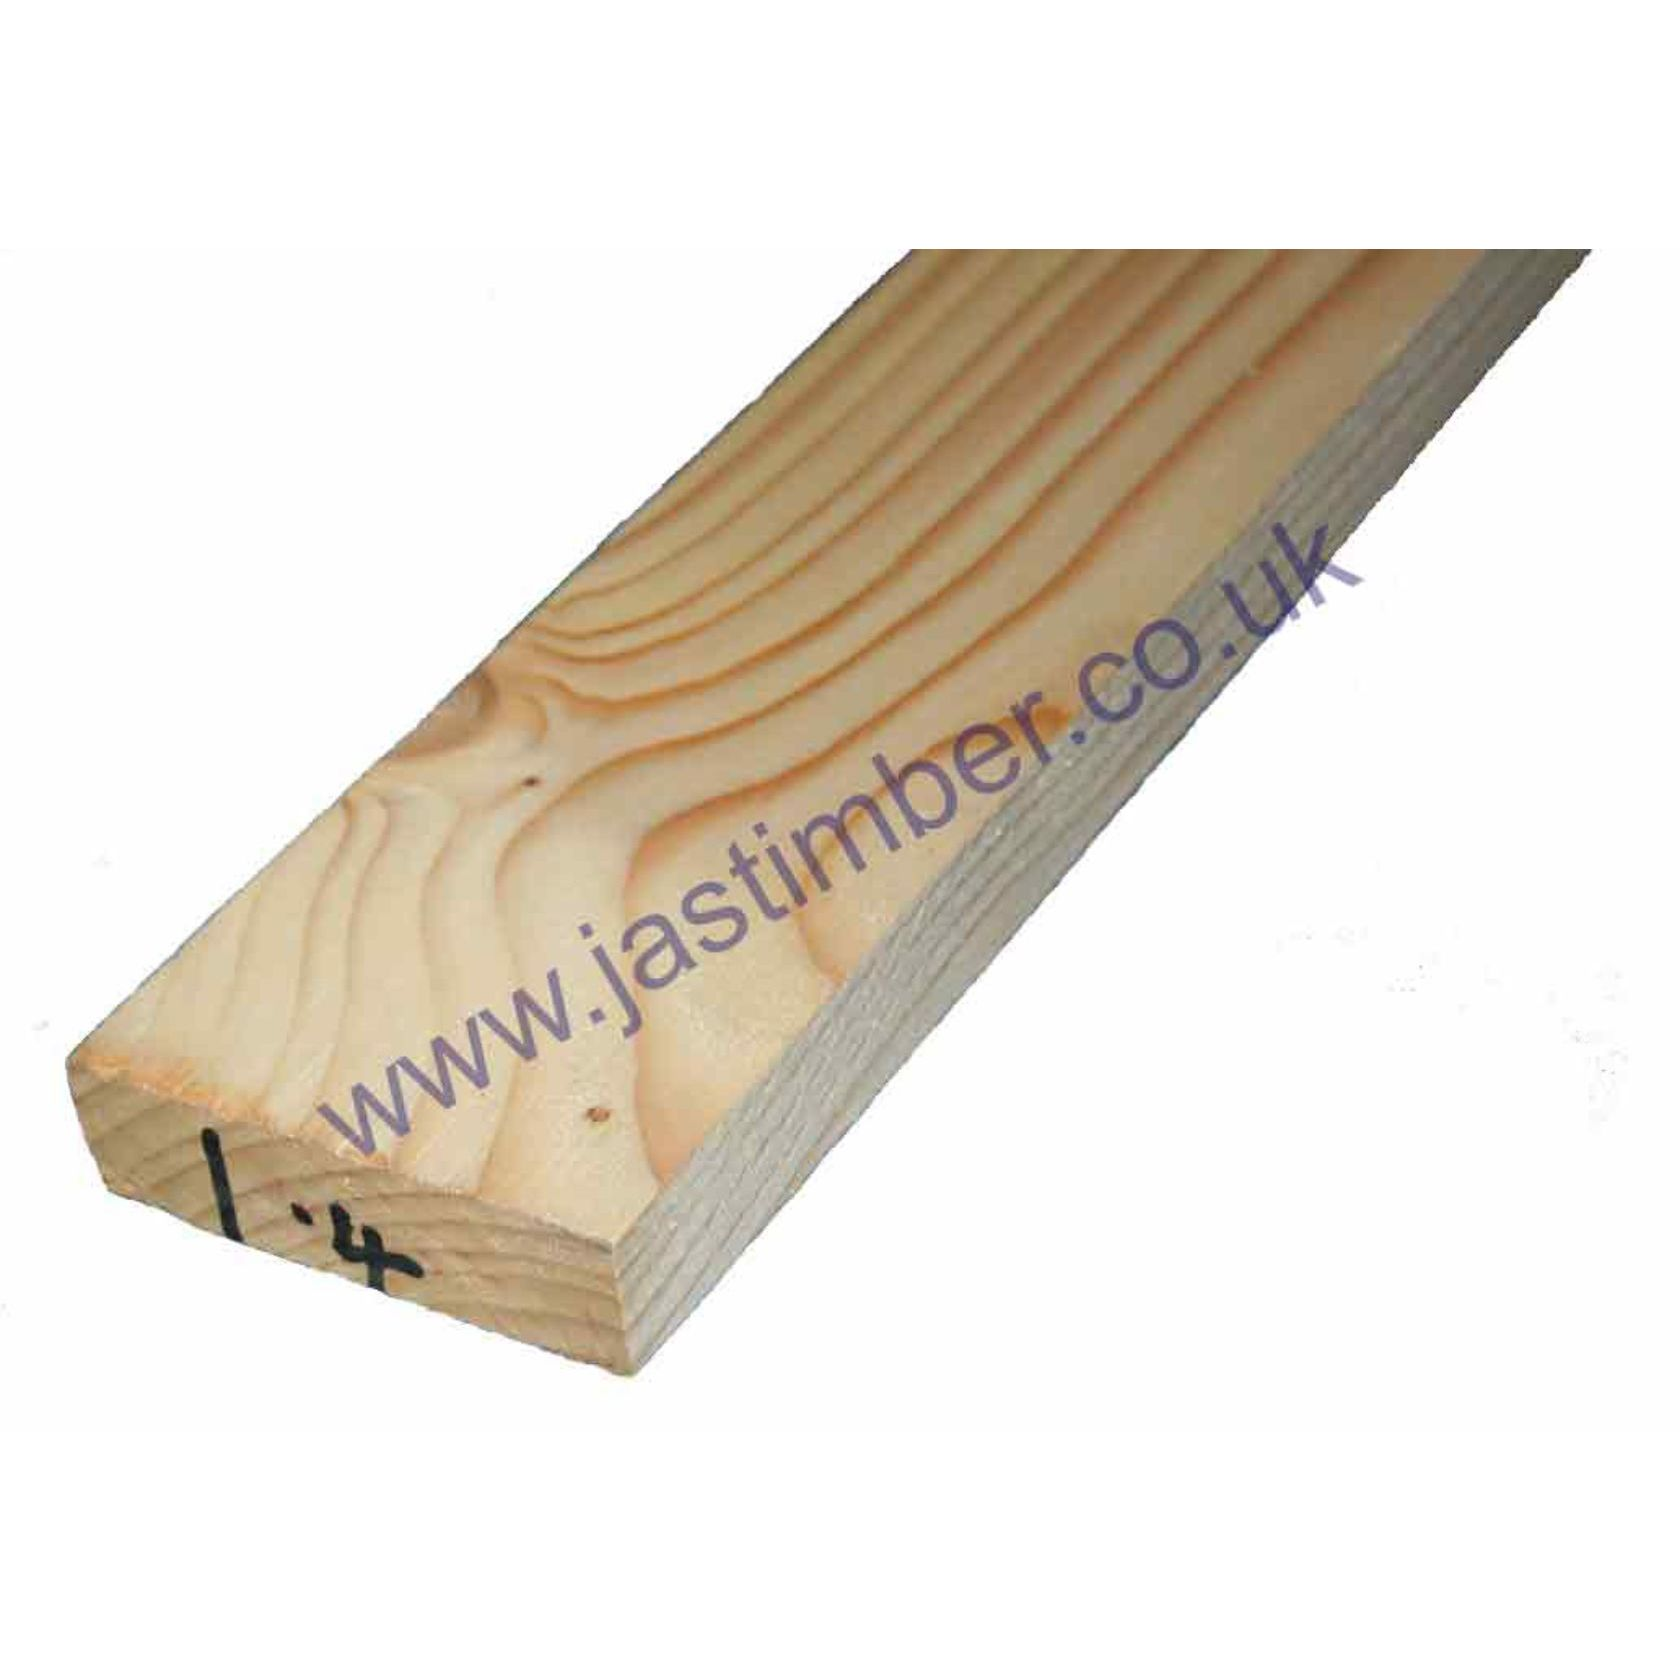 Softwood PSE Whitewood Timber 3x1